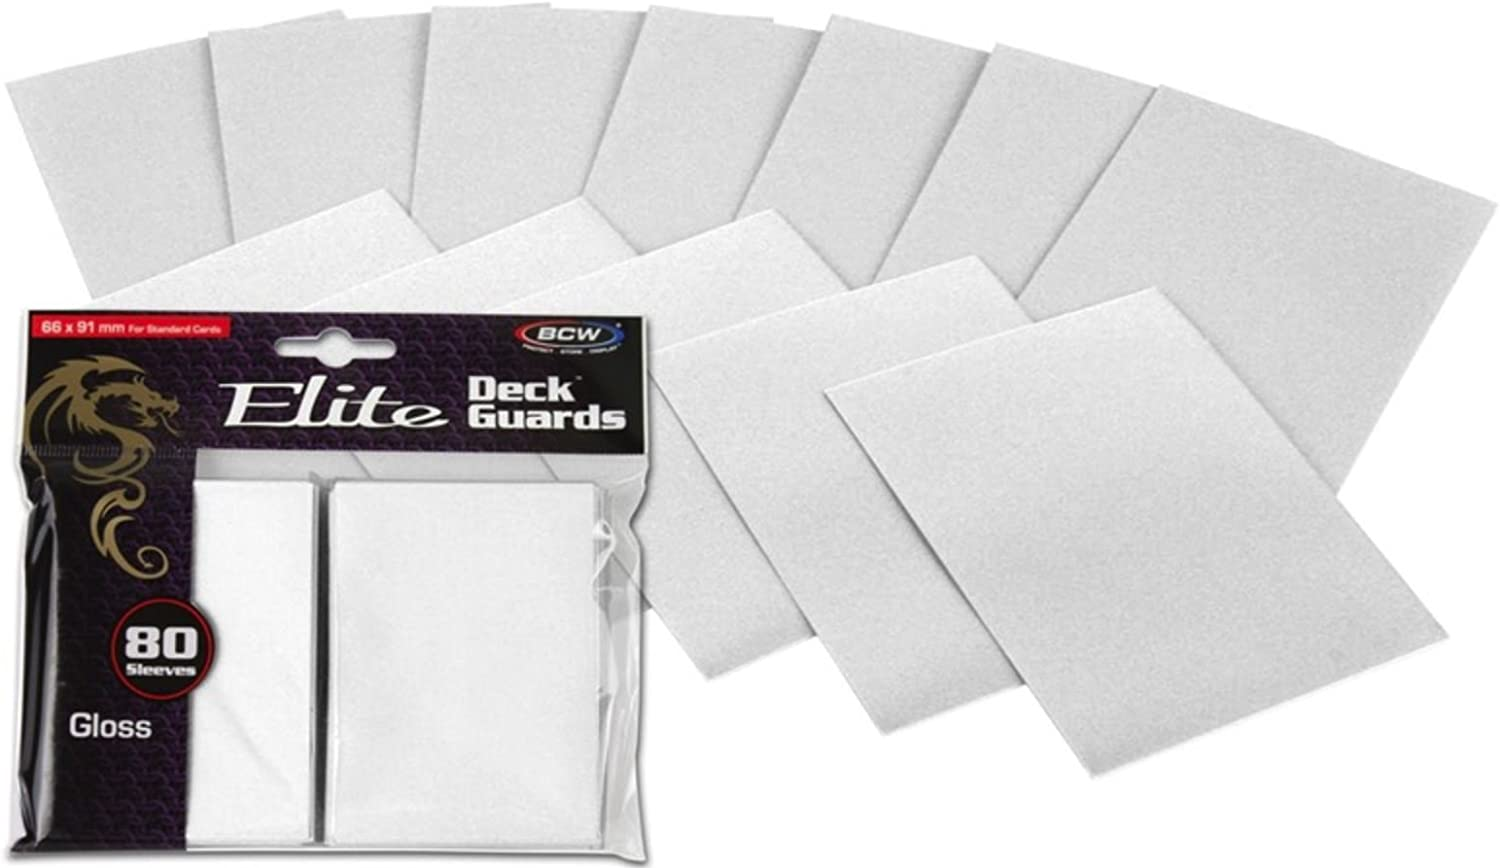 160 BCW Elite Deck Guard Sleeves Glossy White BCW Diversified